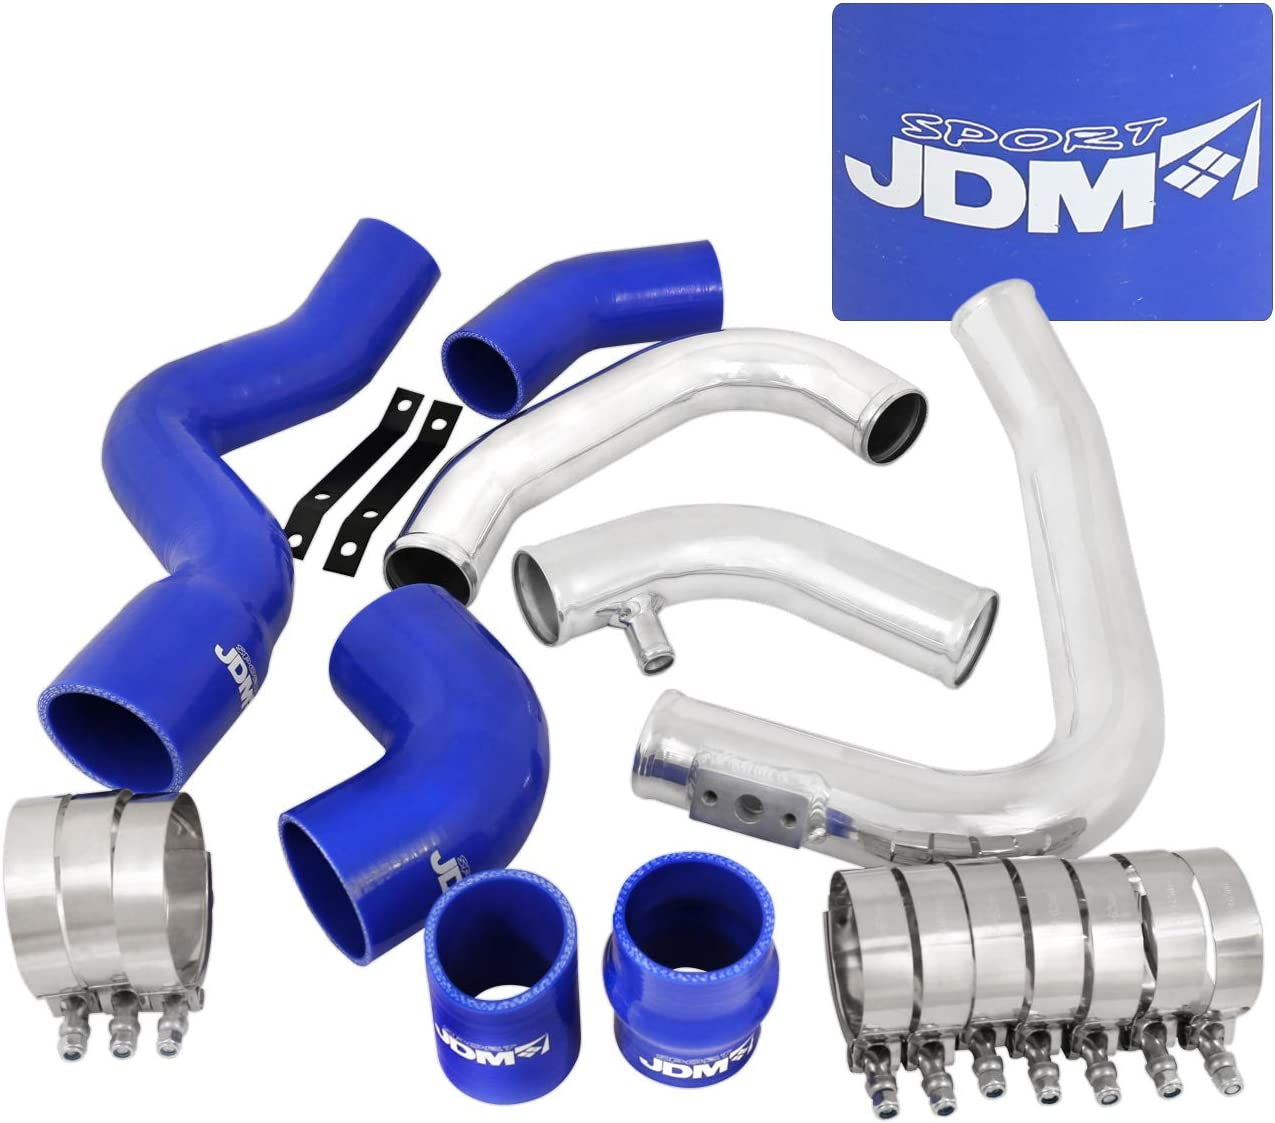 Large-scale sale AJP Distributors Compatible Replacement For Audi 20V B6 1.8L A4 Max 70% OFF